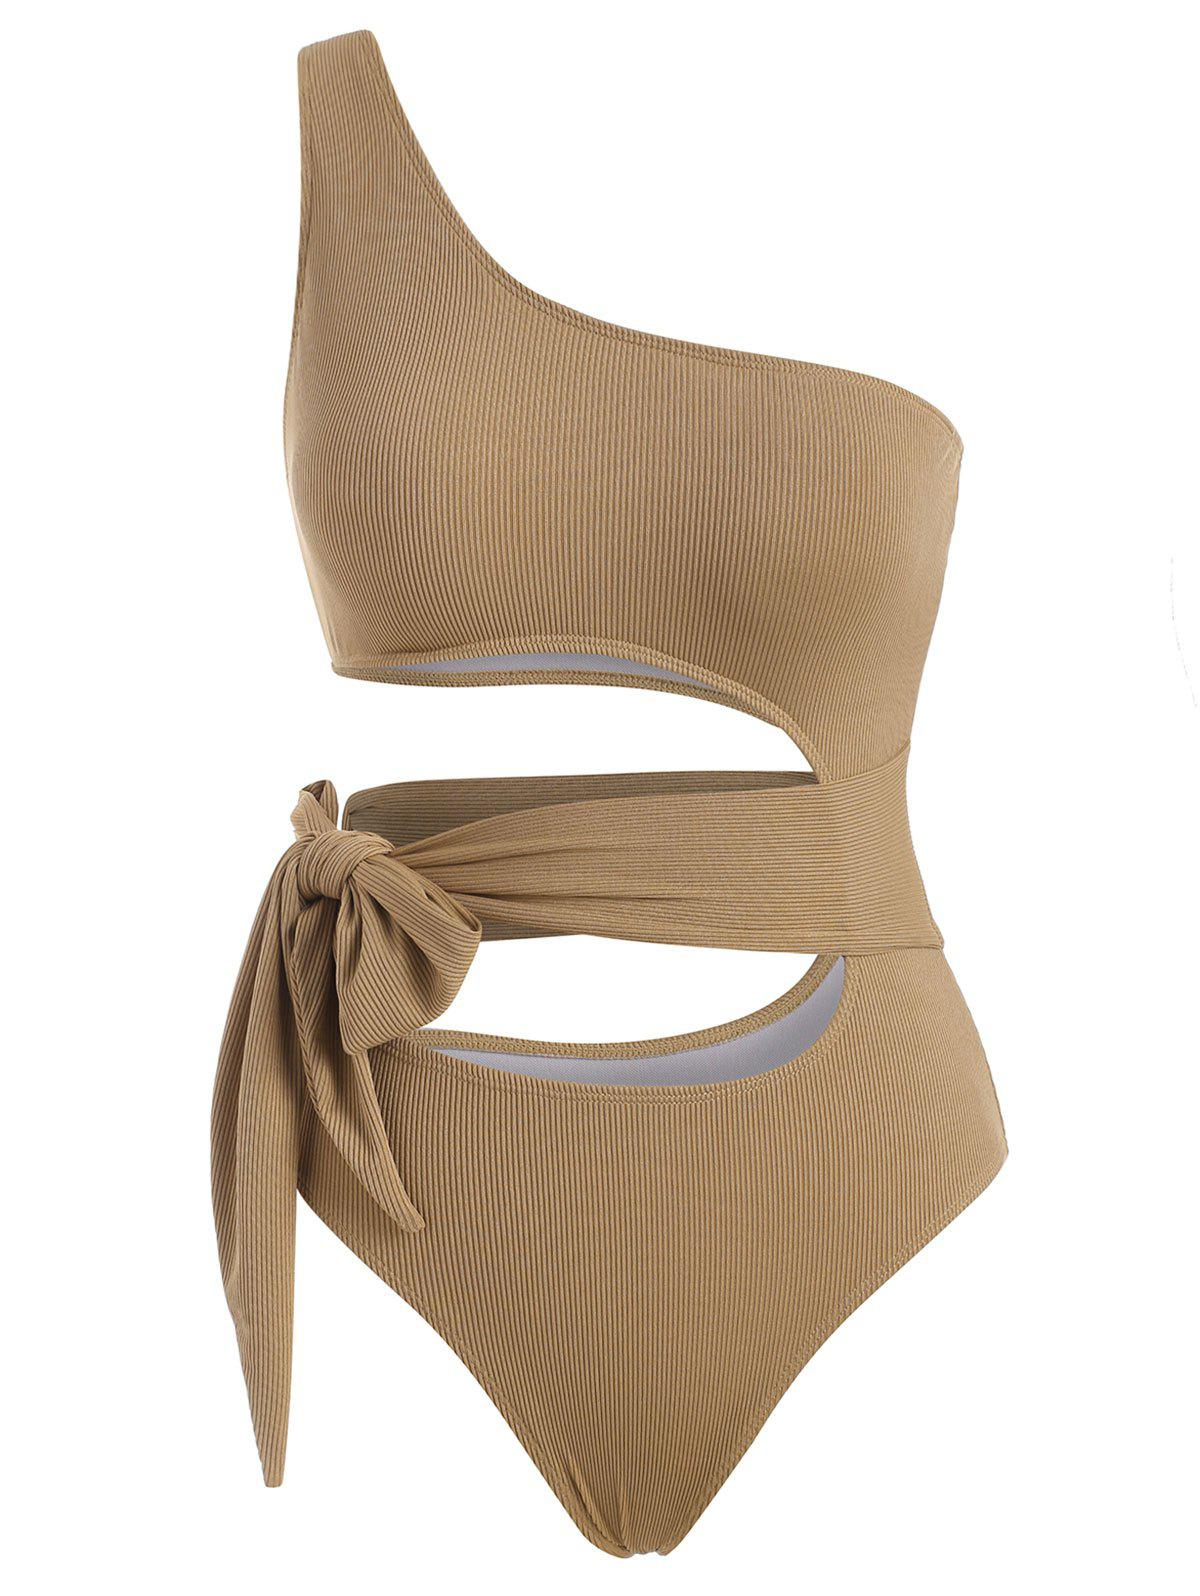 New One Shoulder Ribbed Tie Cutout One-piece Swimsuit